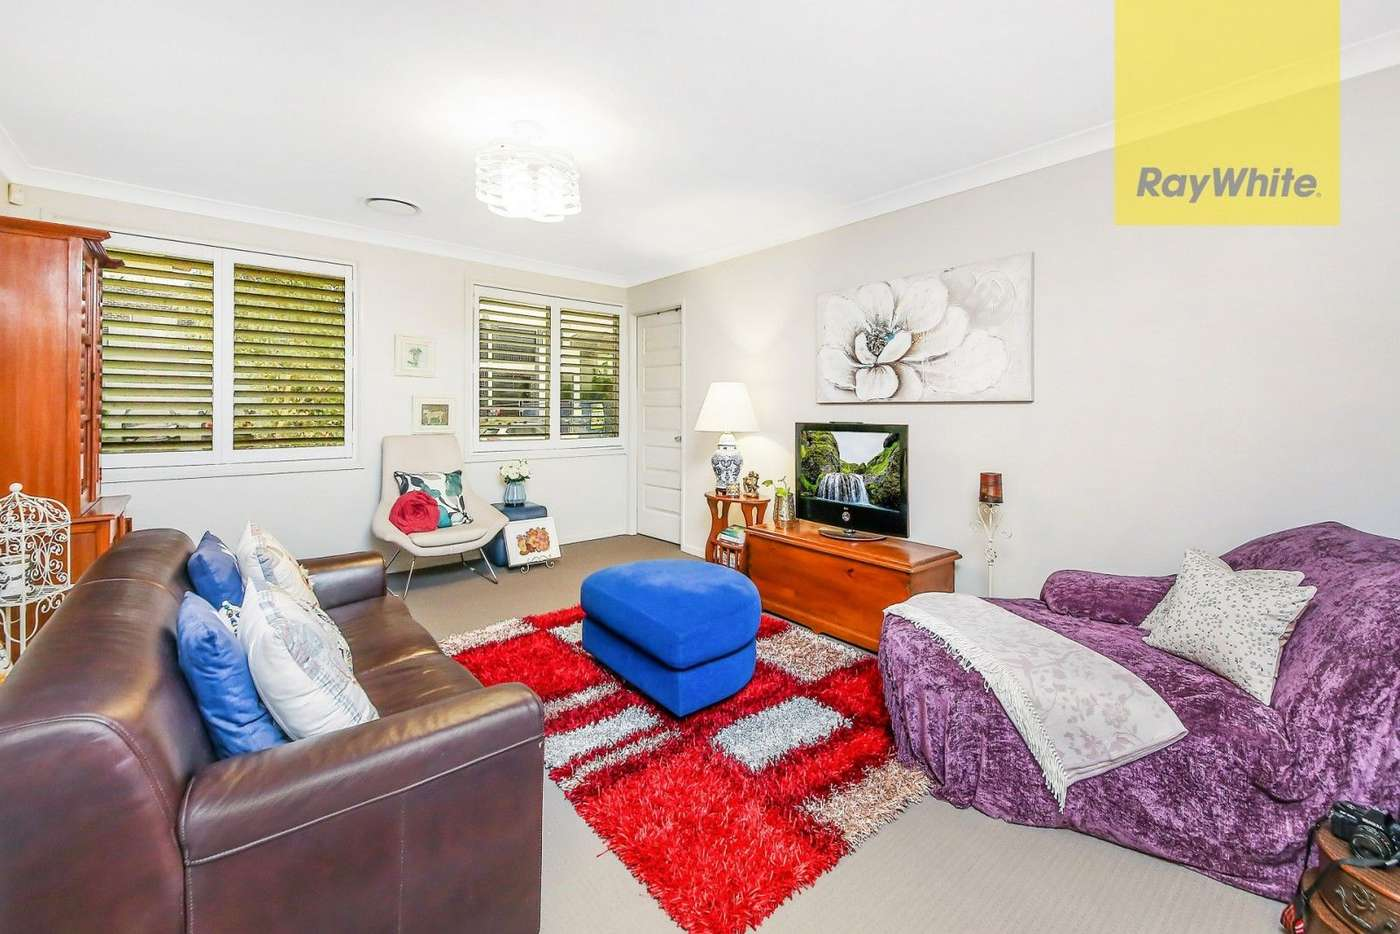 Sixth view of Homely house listing, 44 William Street, Holroyd NSW 2142